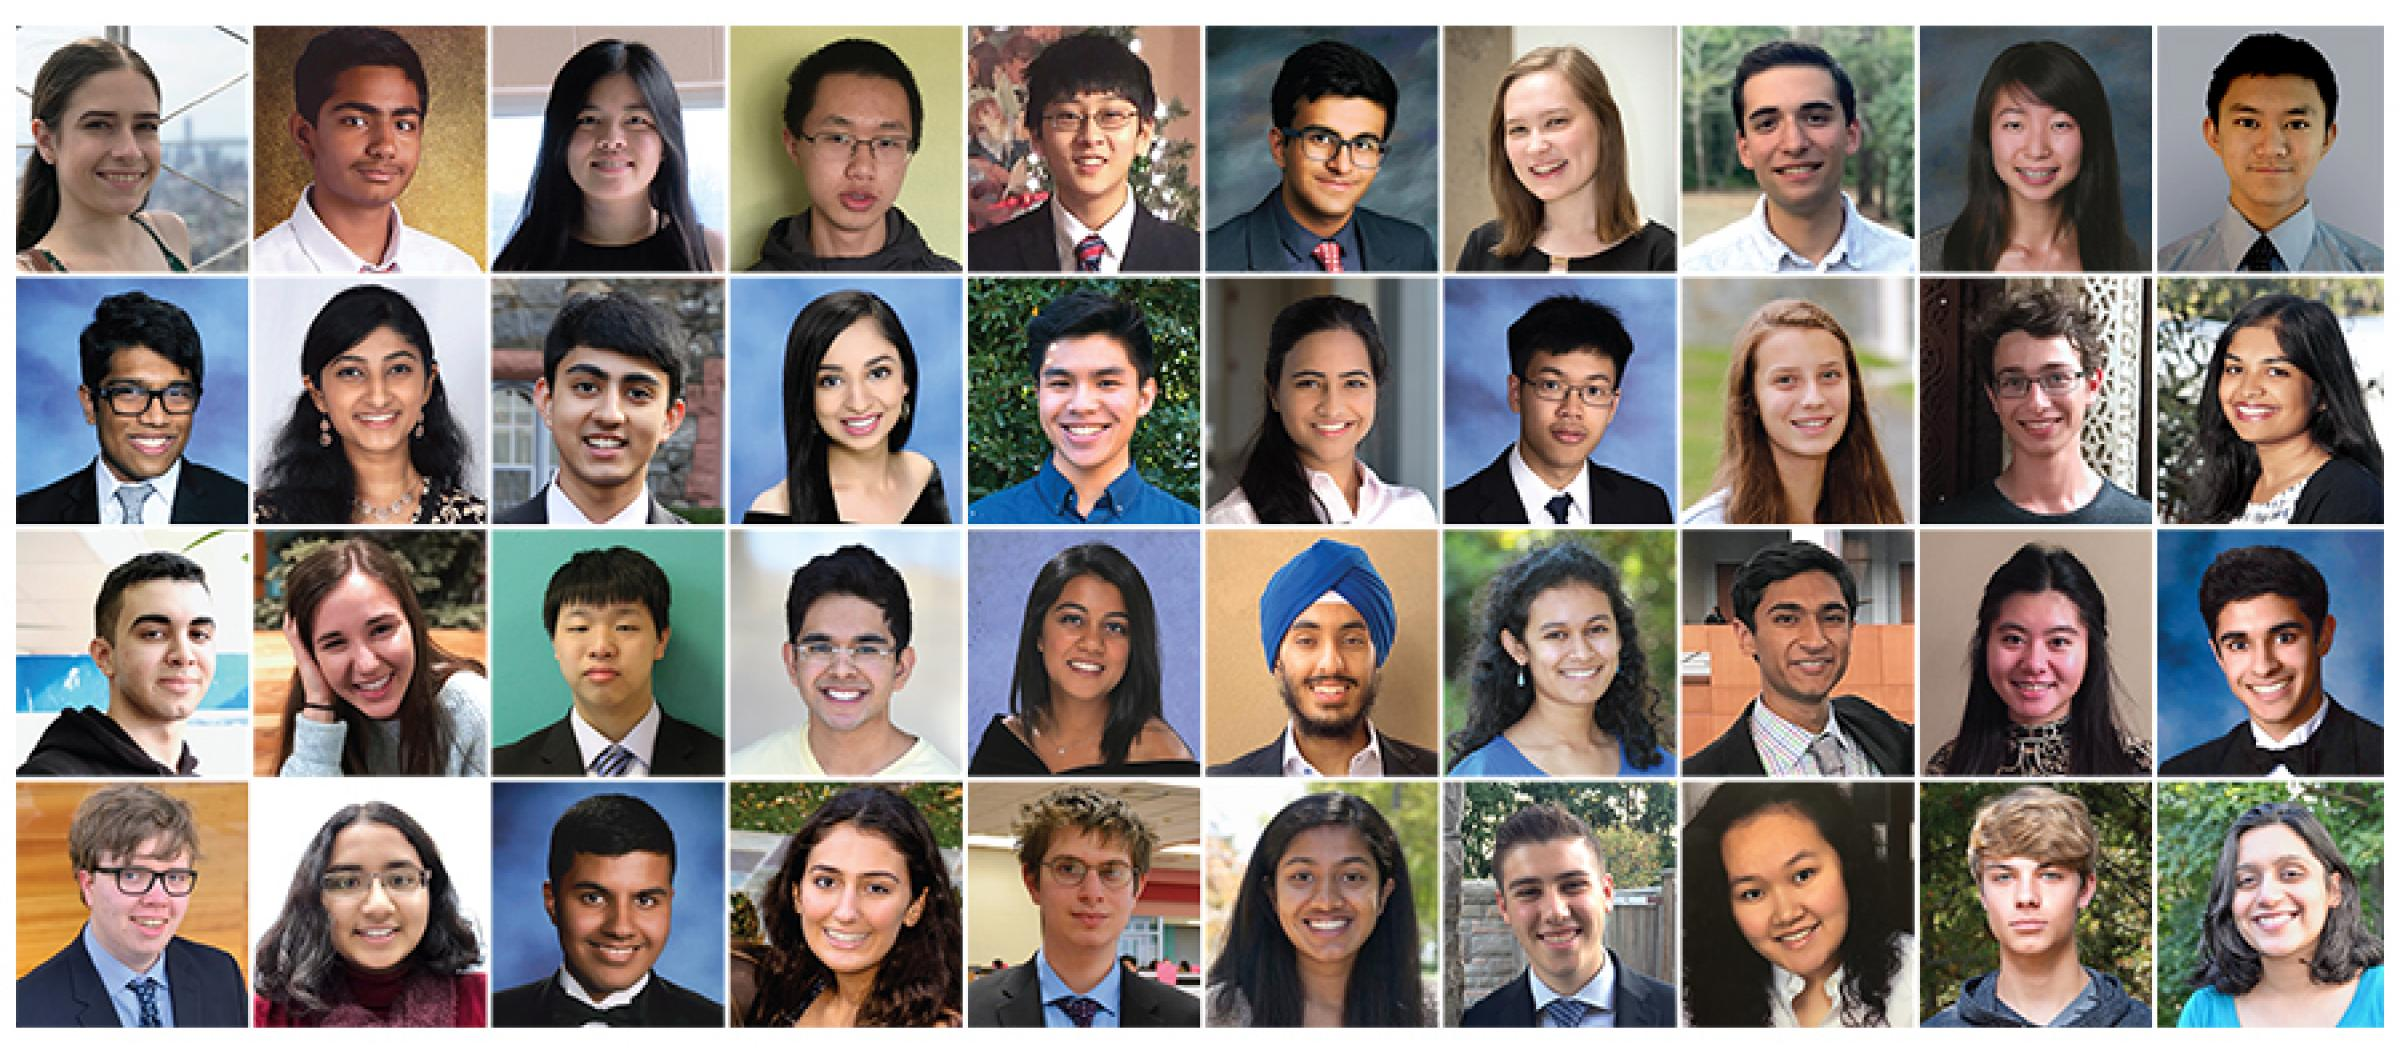 The 40 finalists in the 2019 Regeneron Science Talent Search